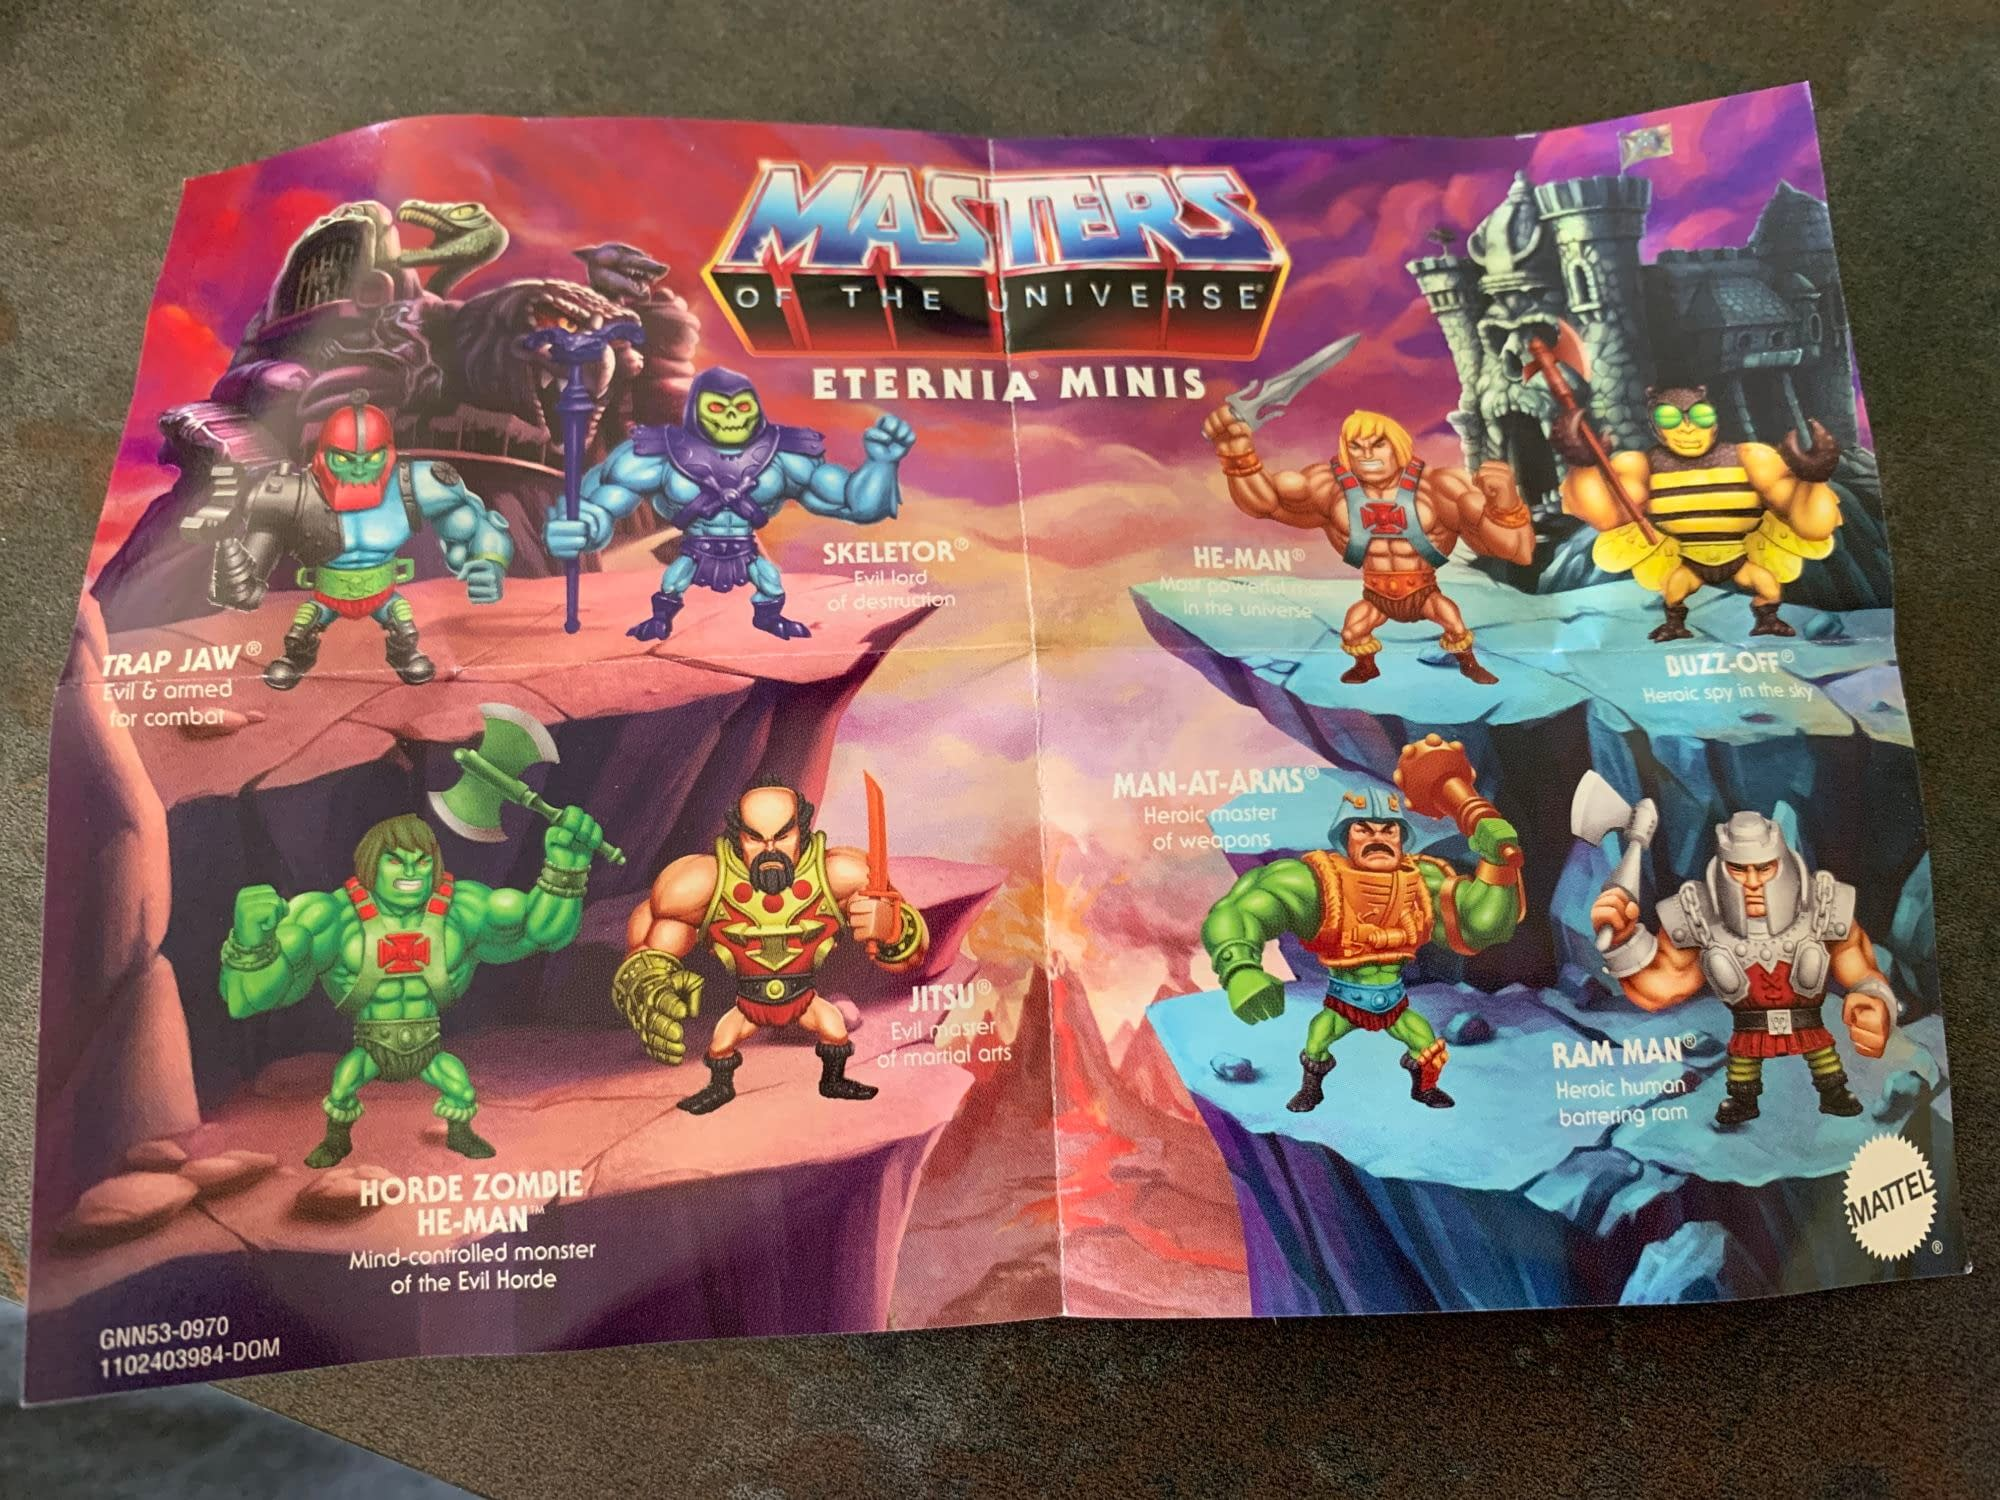 Masters Of The Universe Eternia Minis Are Great Little Figures